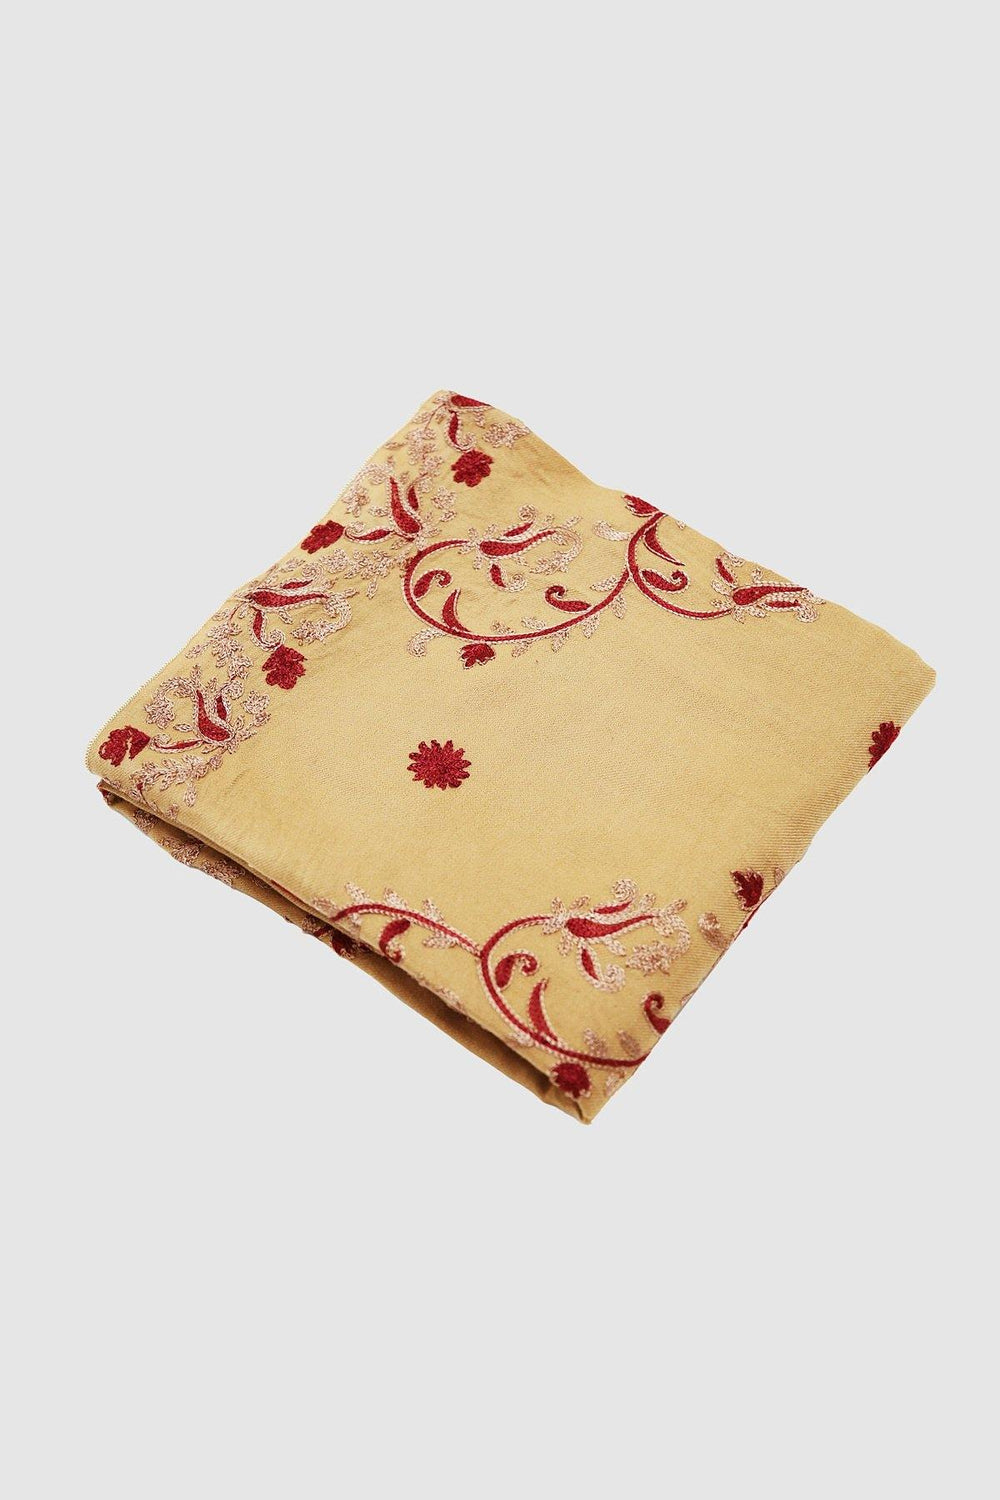 Maroon Leaves Embroidered Woolen Shawl - Brandsea UK